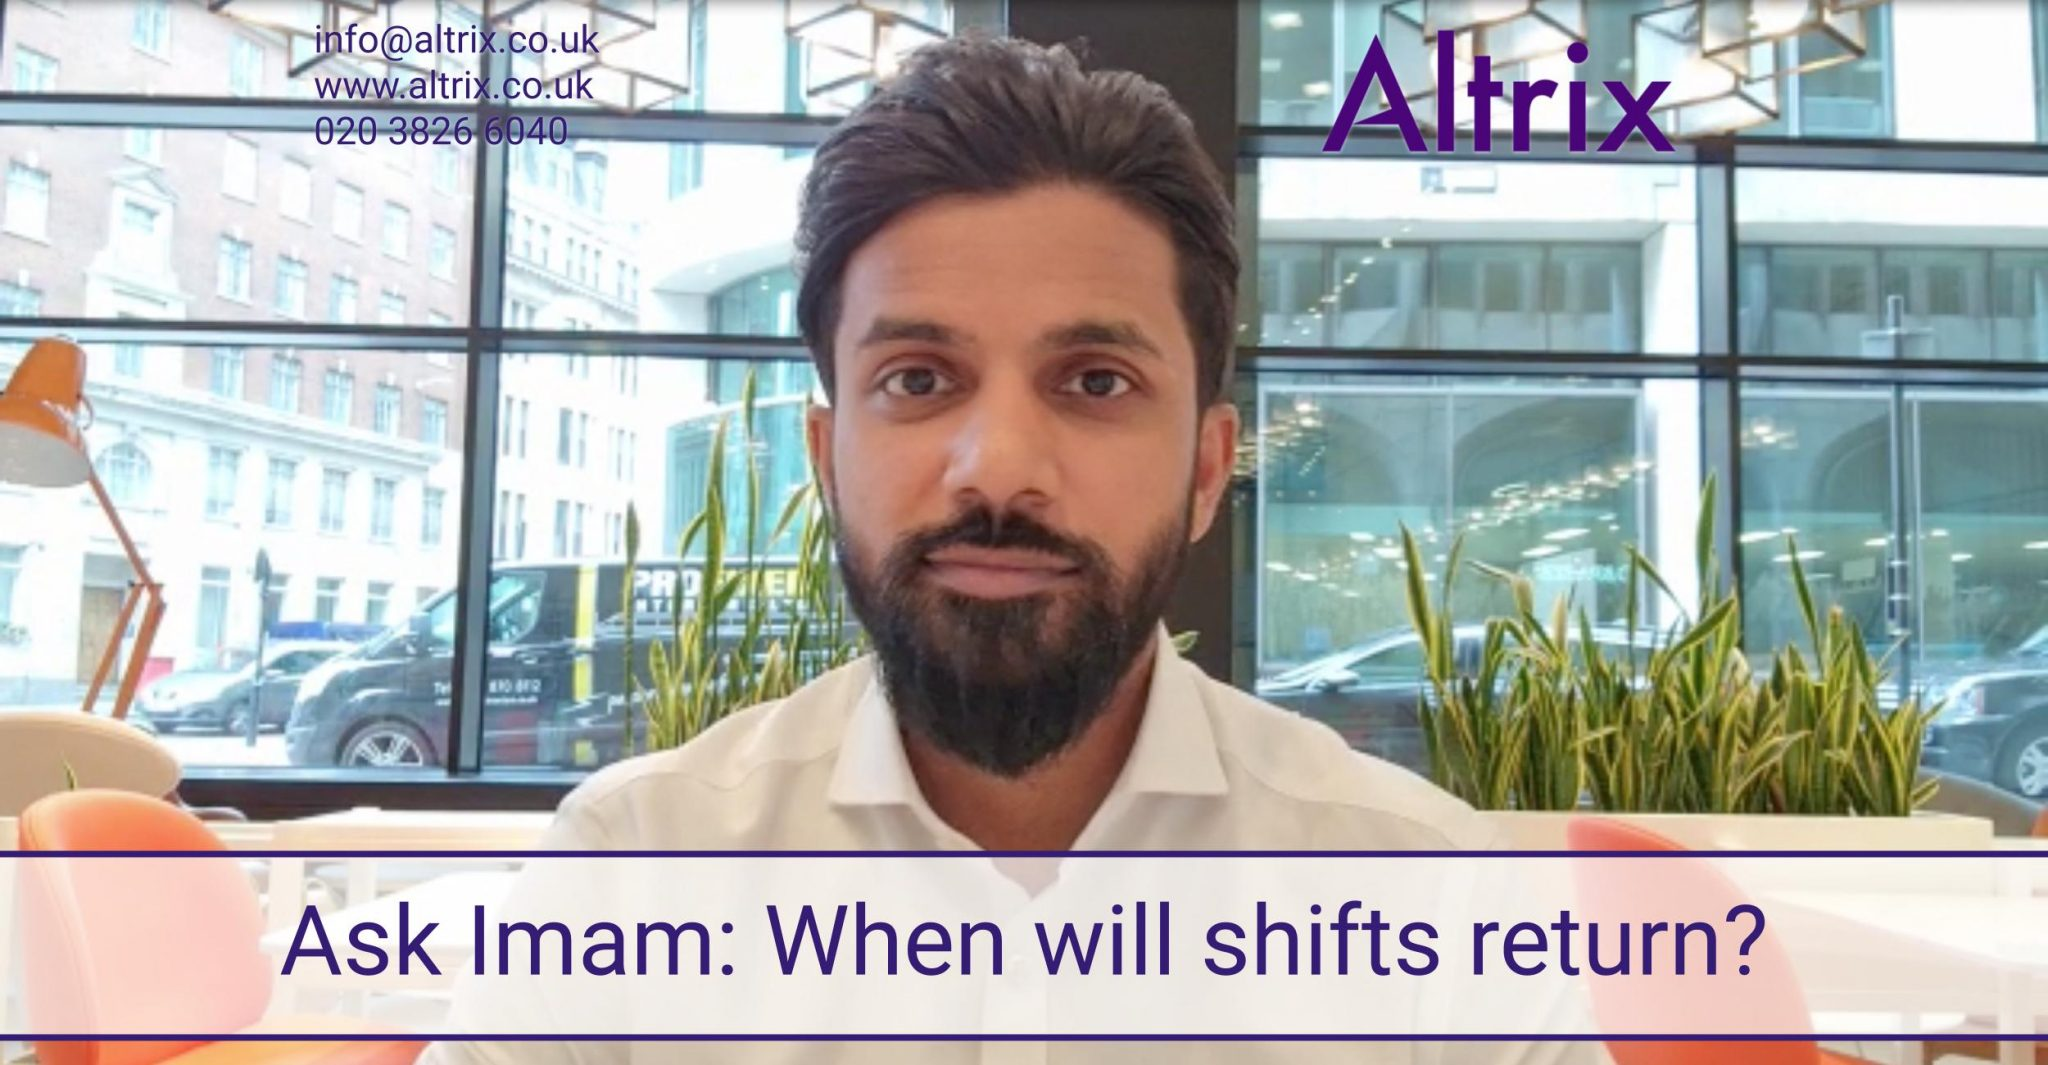 ask altrix low volume of shifts increase